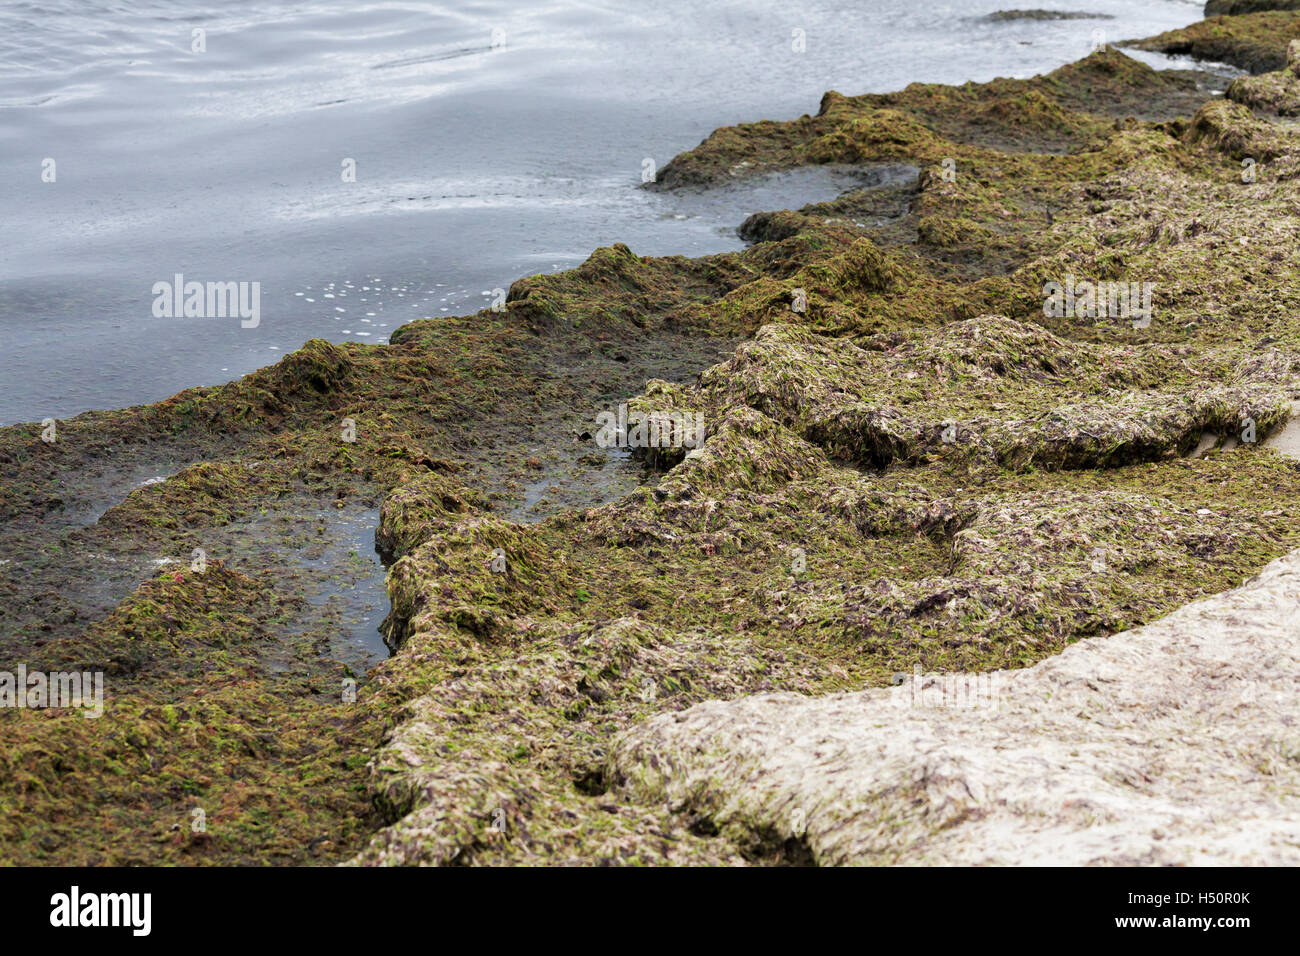 Rotting seaweed by the sea - Stock Image